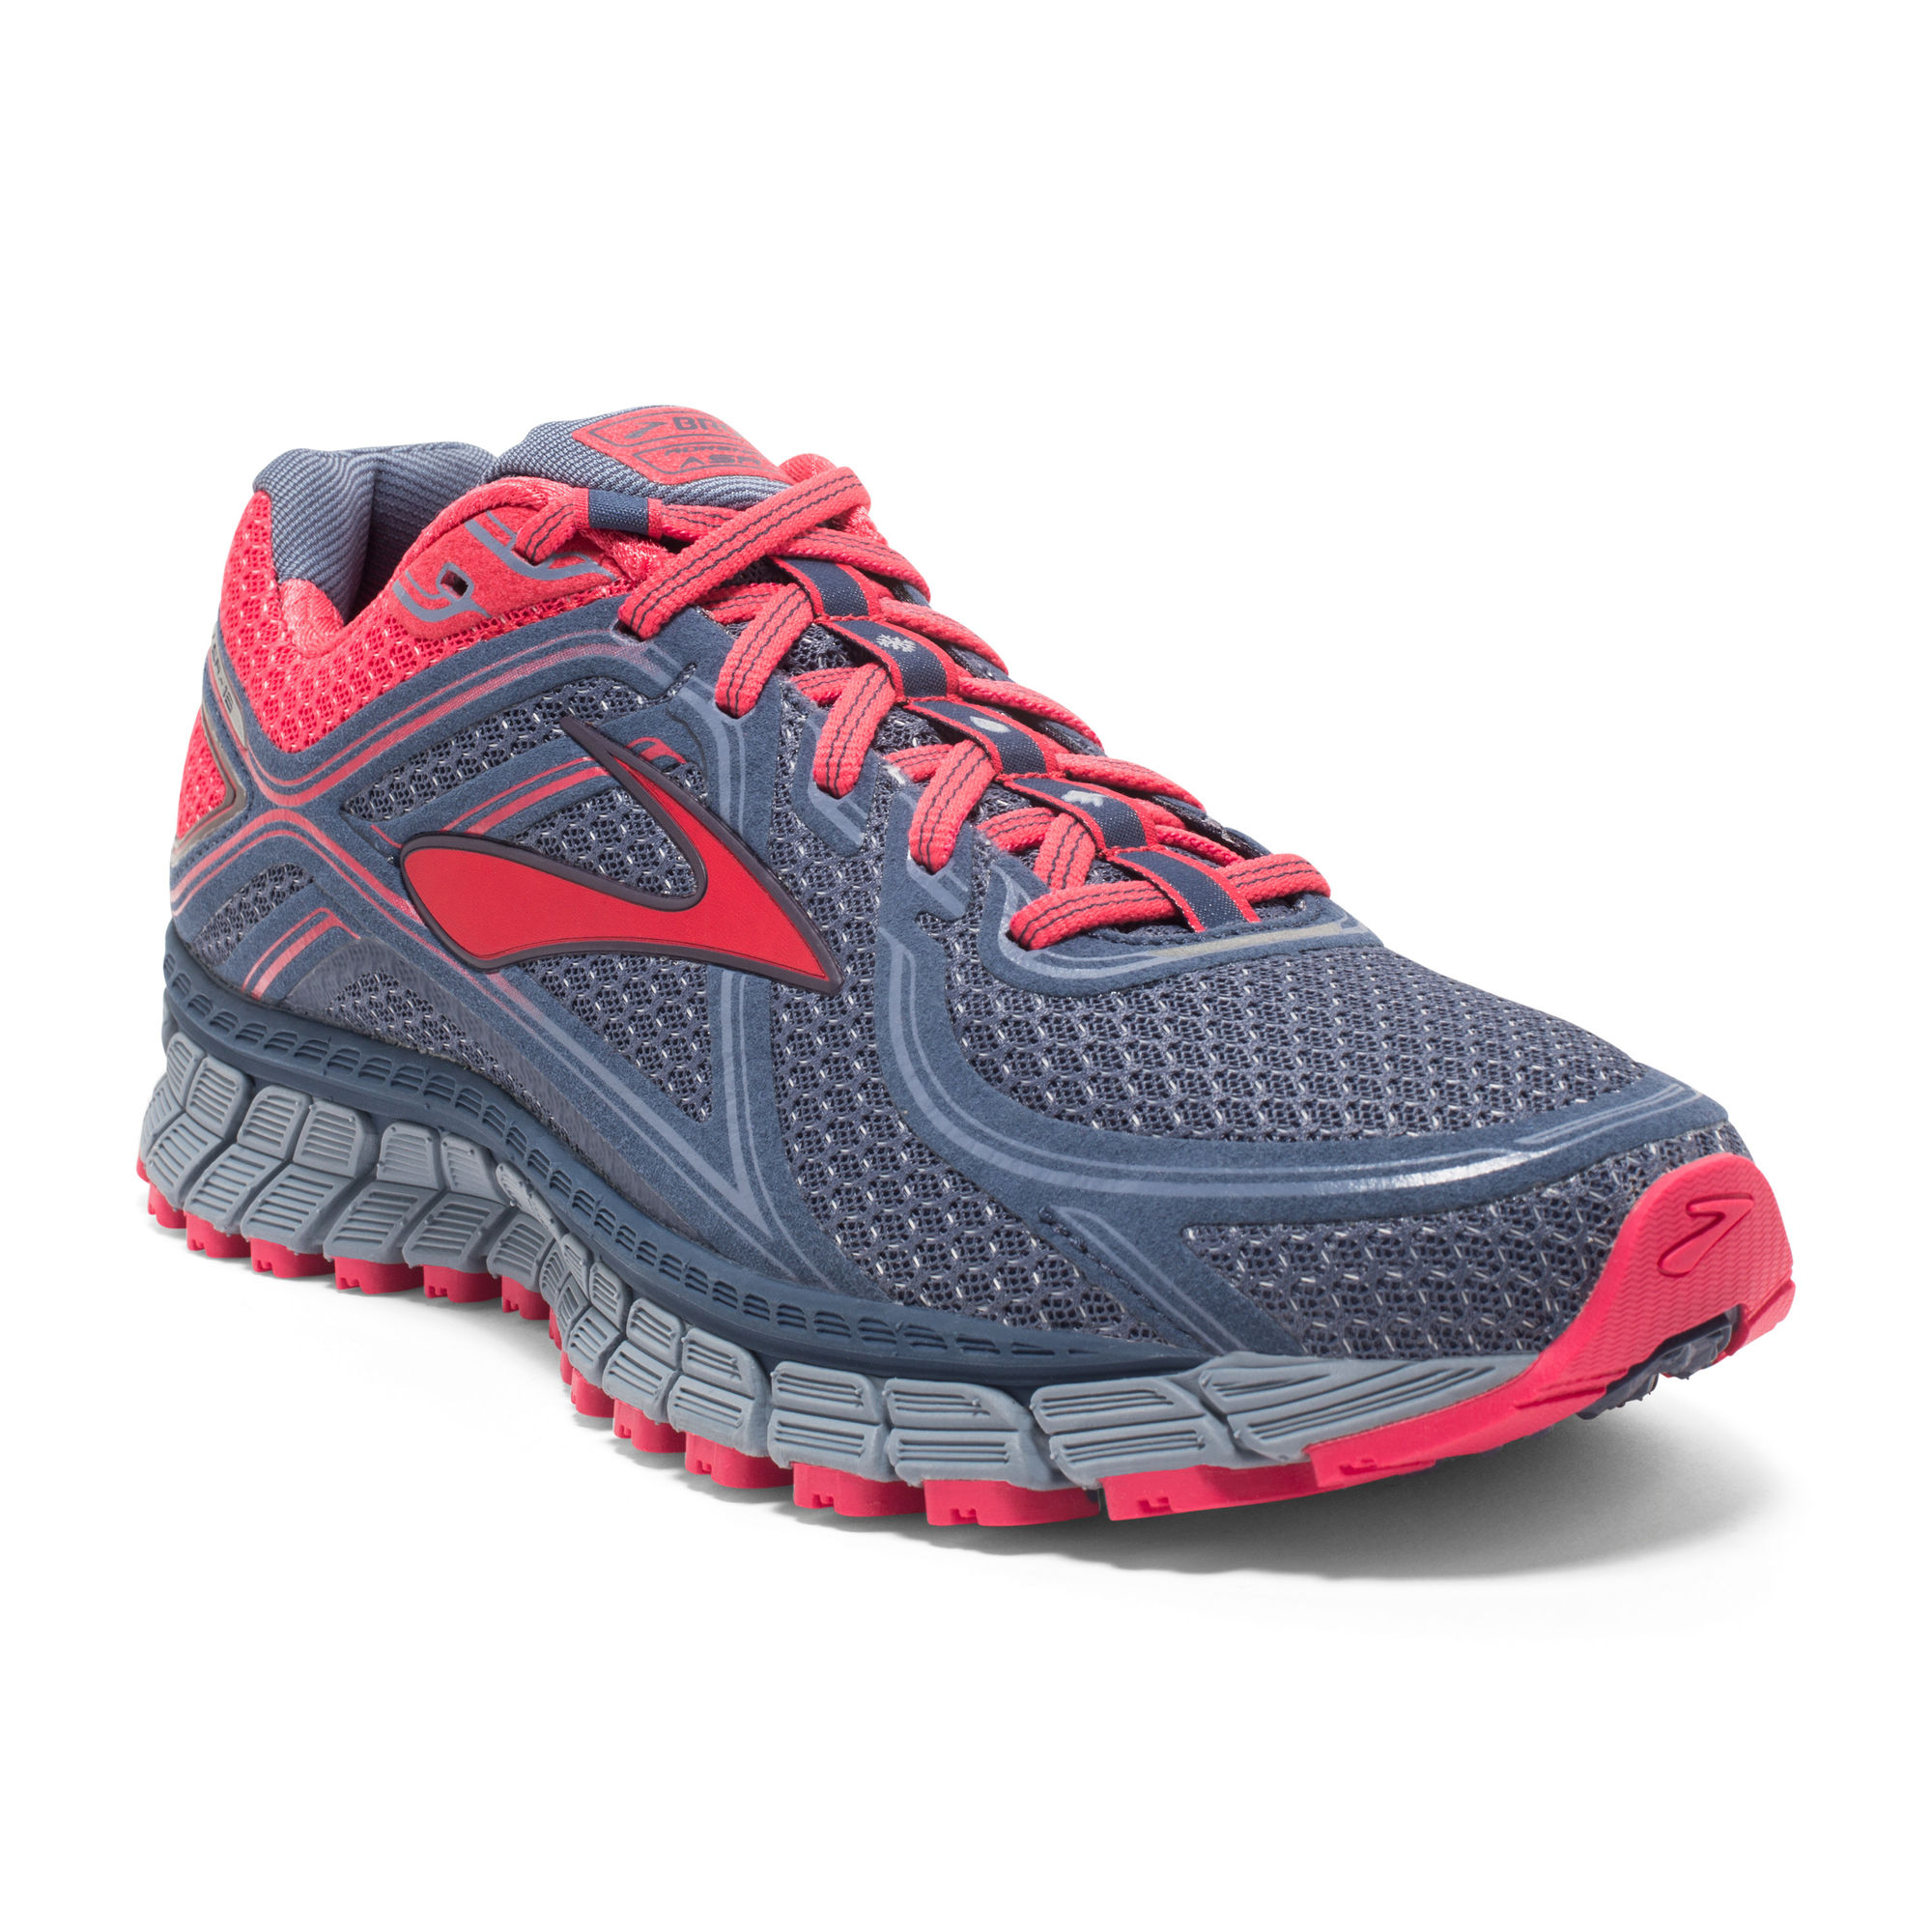 Brooks Lady Adrenaline ASR 13 in Crownblue/ Teaberry/ Stonewash